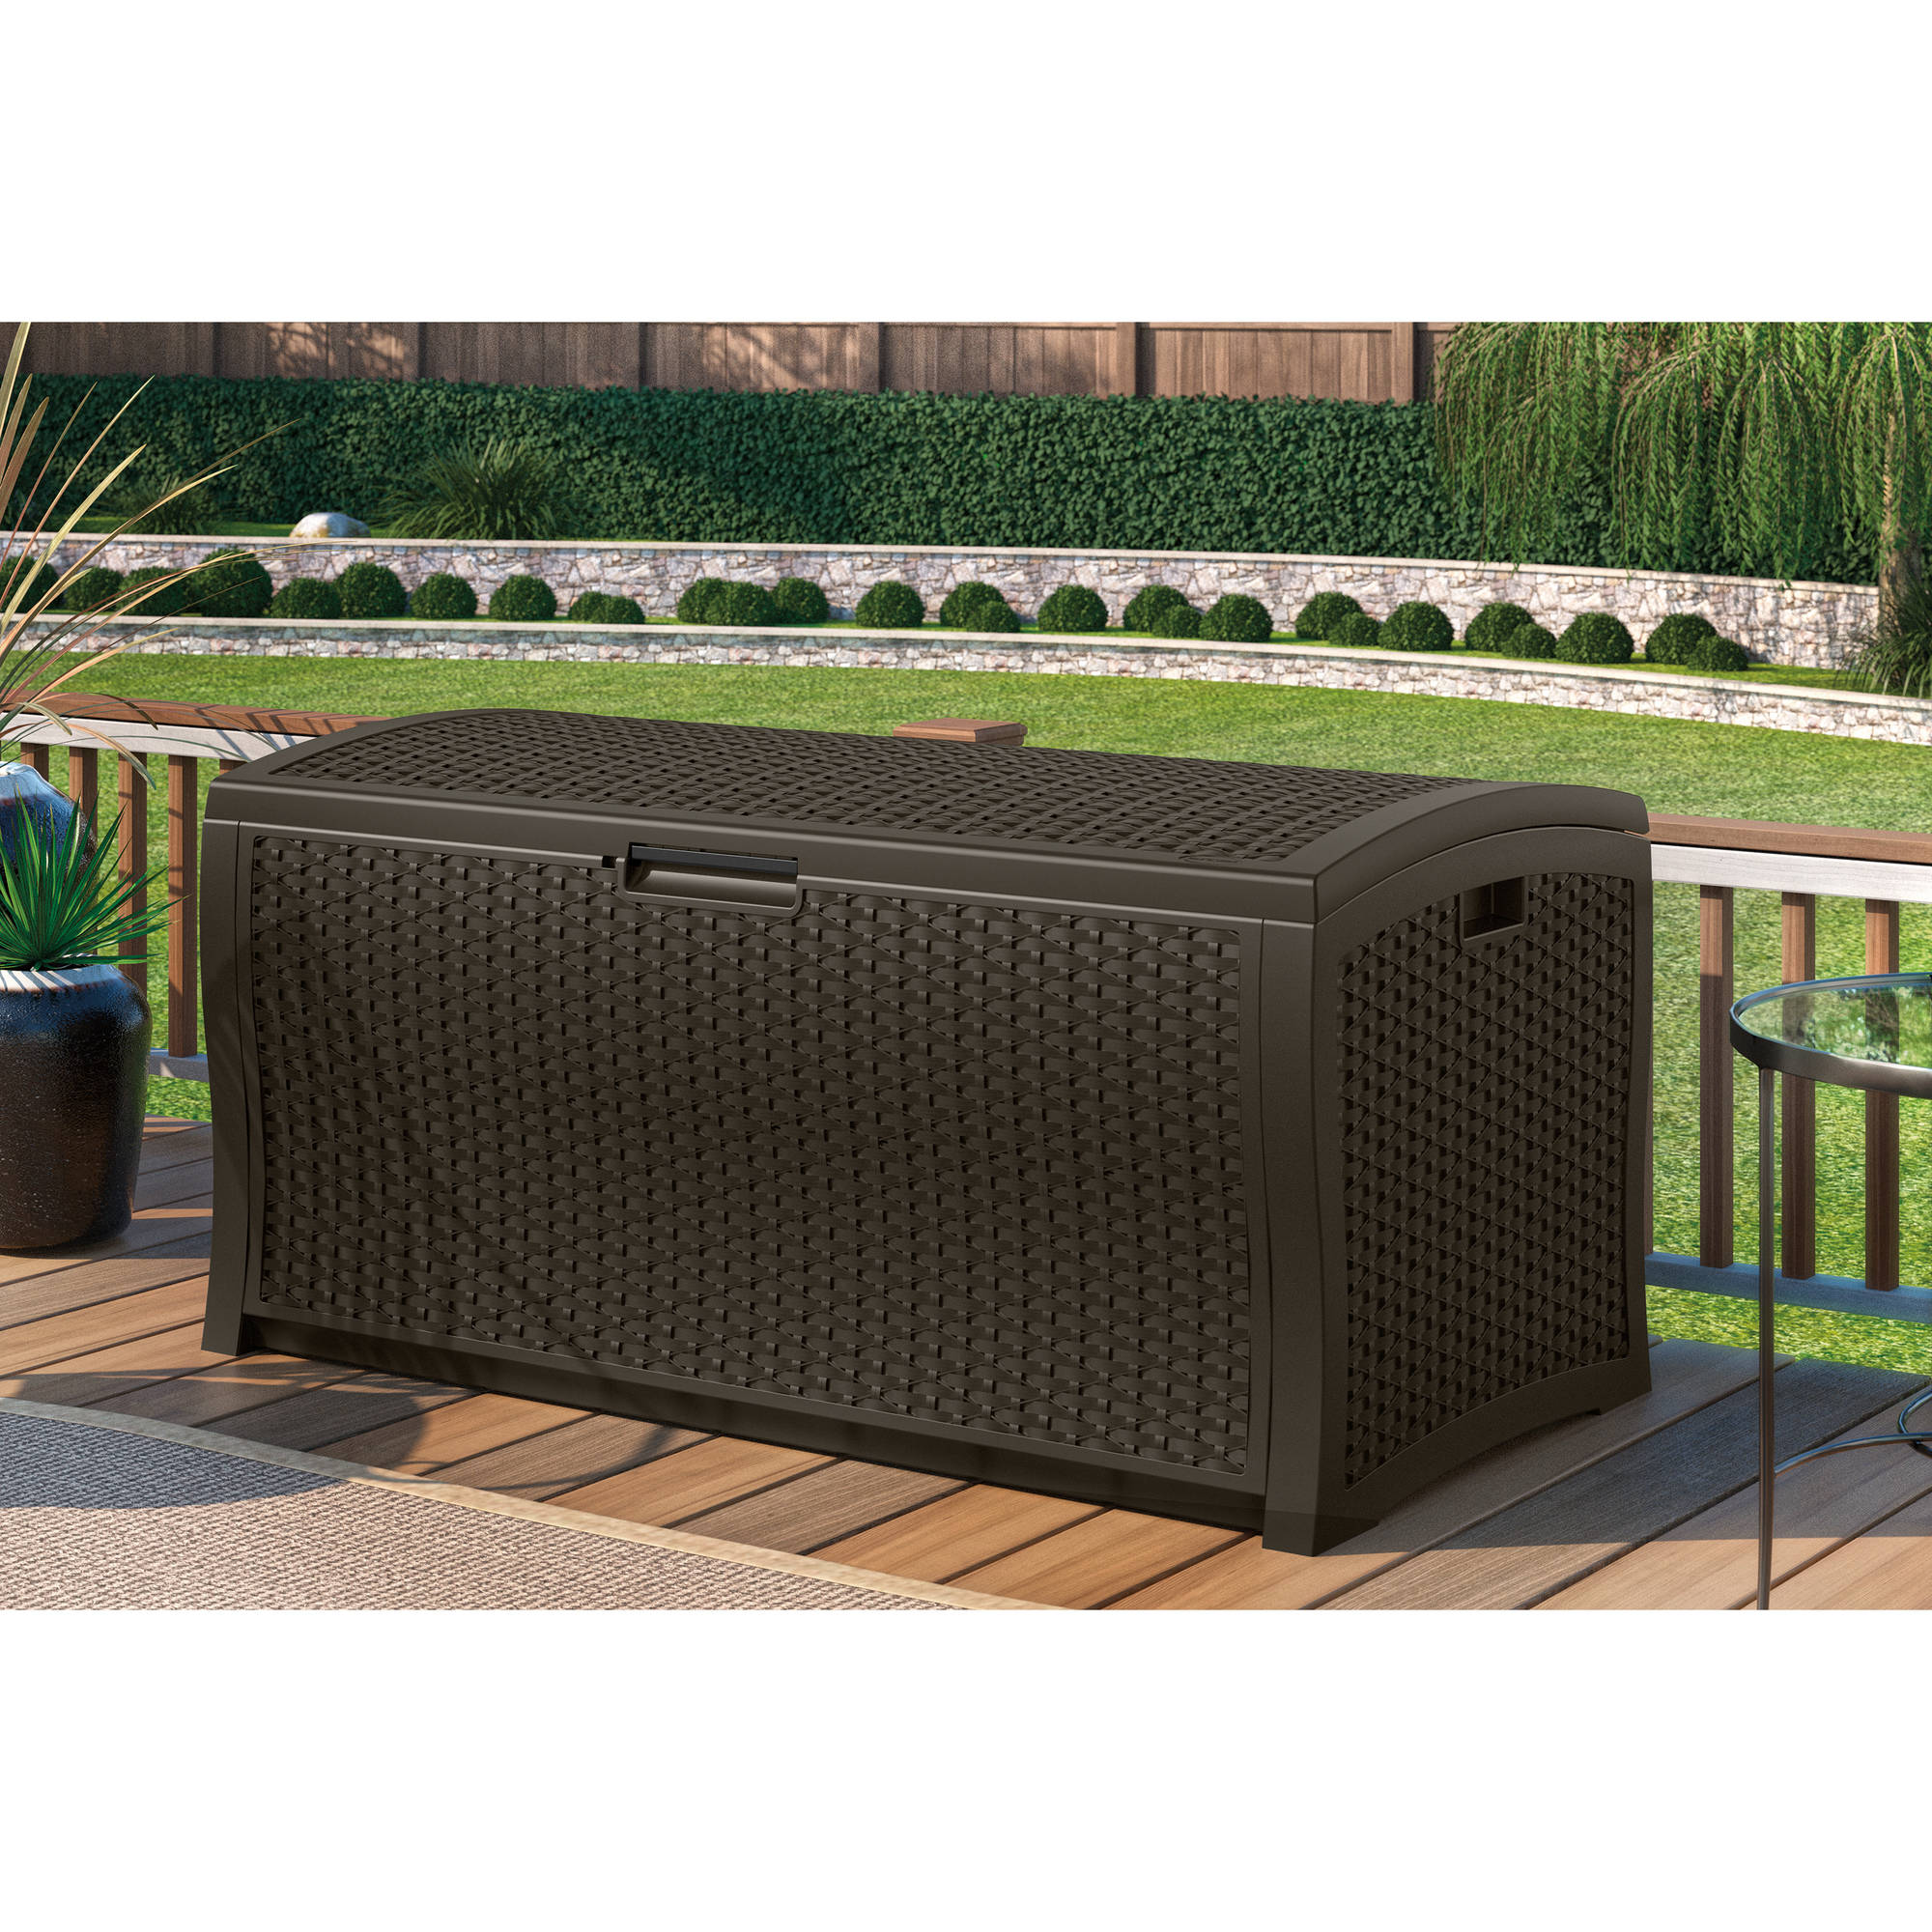 Wonderful Suncast 50 Gallon Light Taupe Resin Storage Seat Deck Box DB5500    Walmart.com